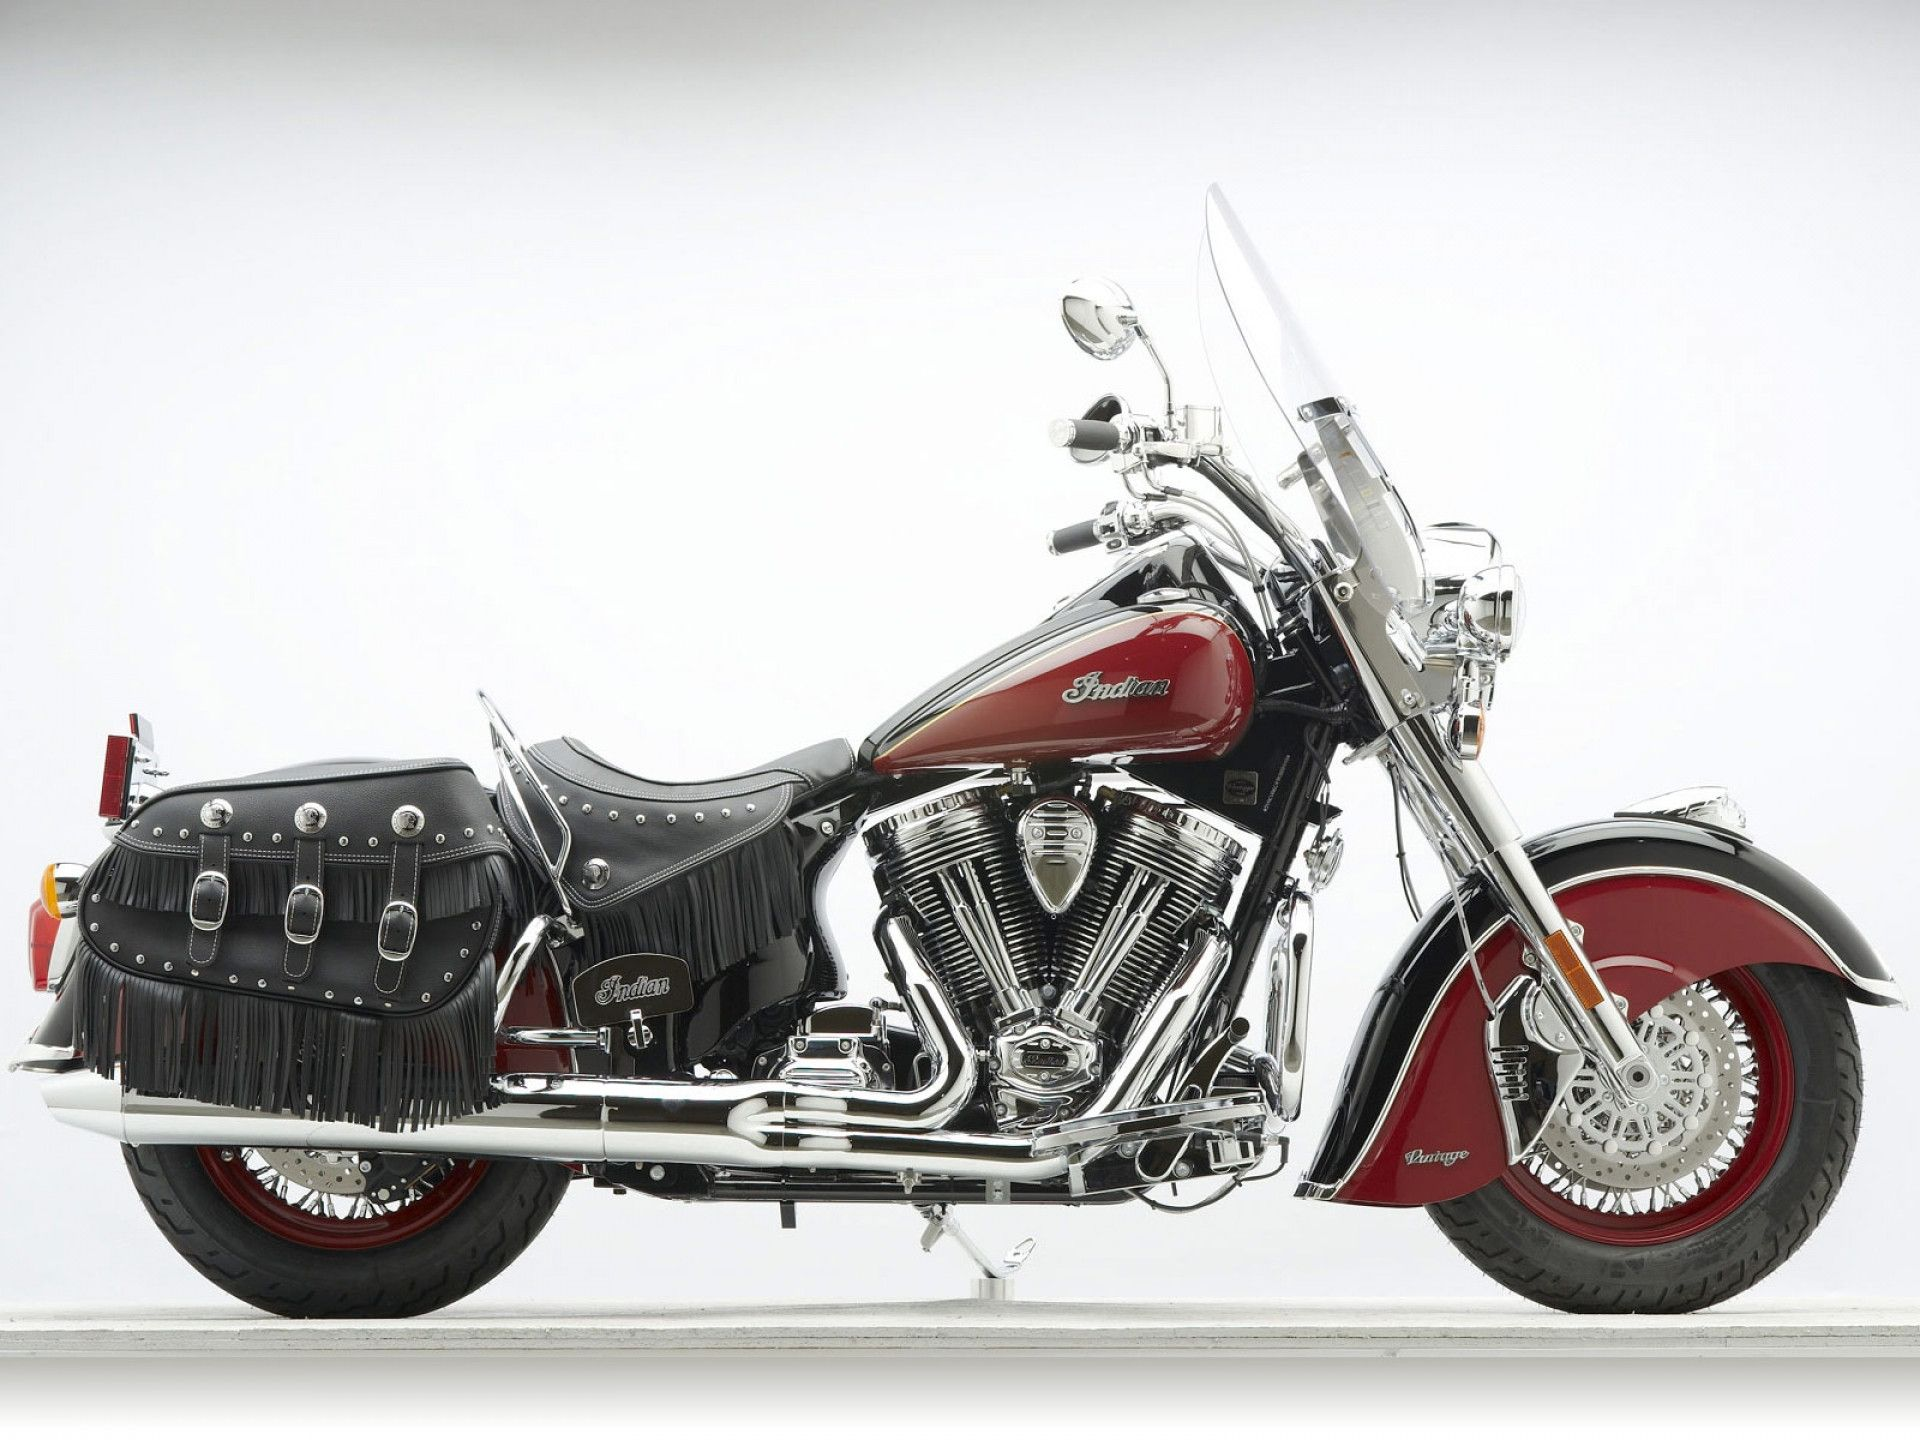 Vintage Indian Motorcycles Wallpapers Hd Cool 7 HD Wallpapers 1920x1440